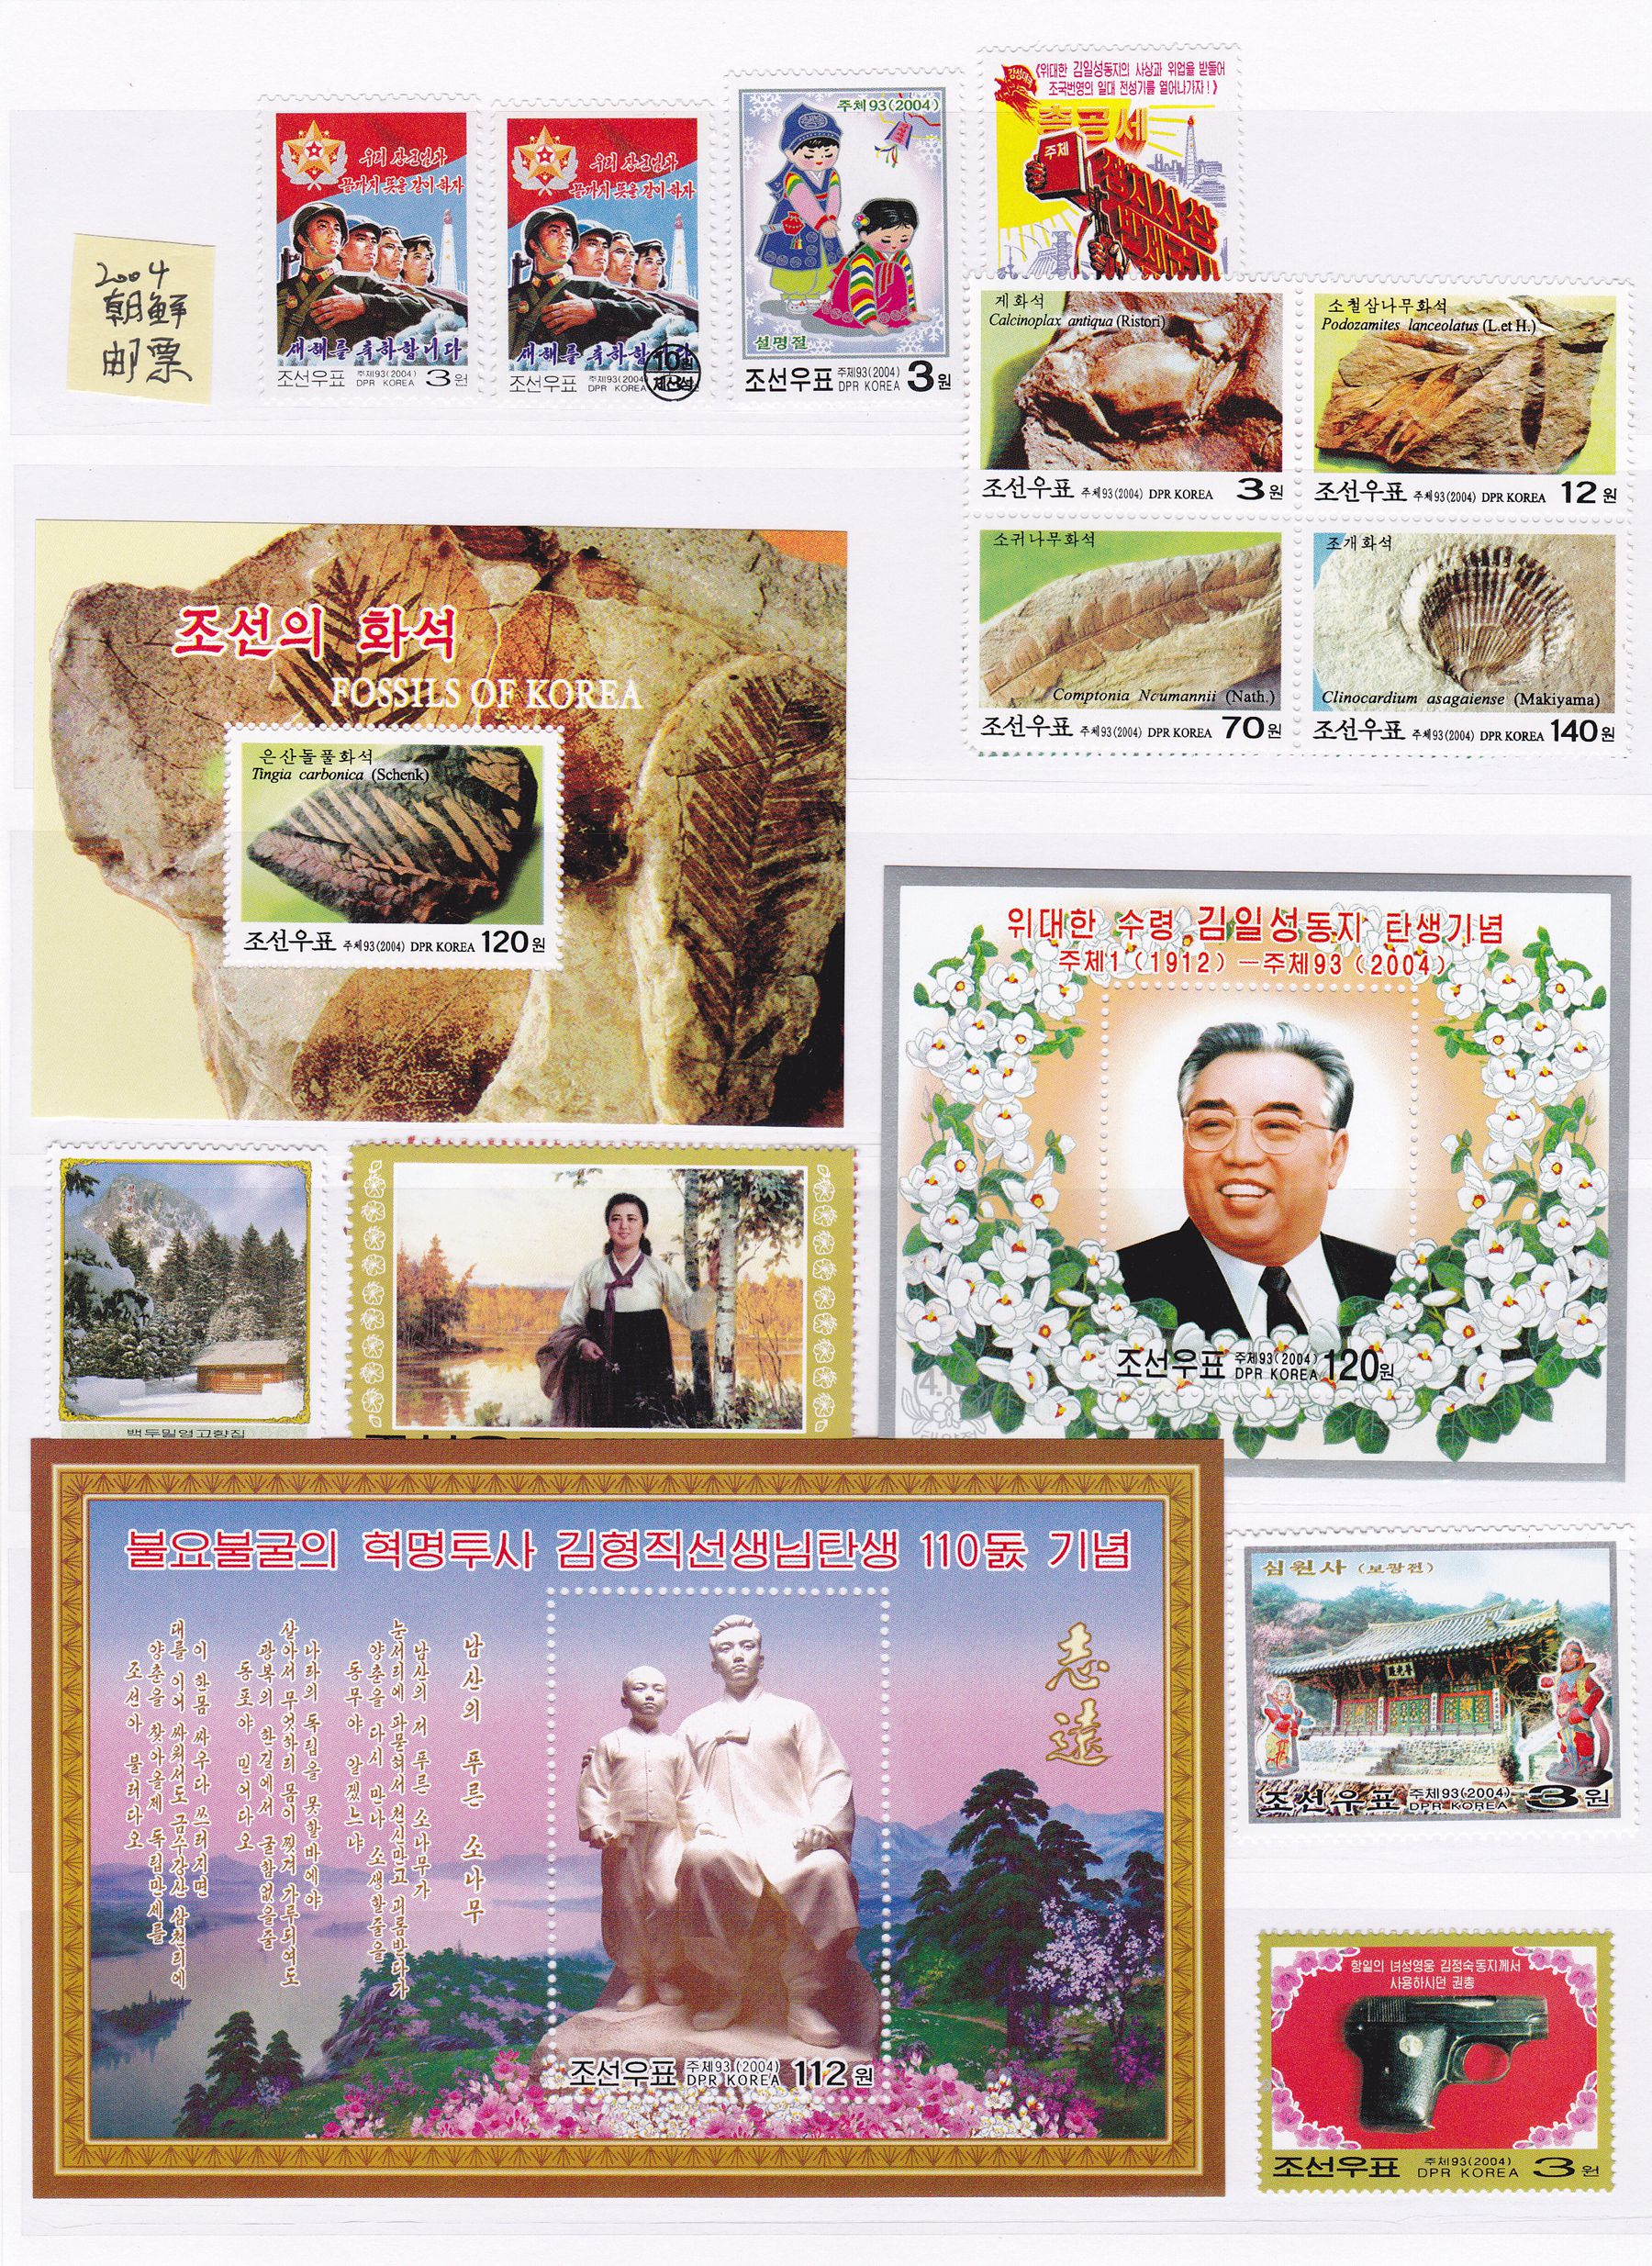 L4044, Korea 2004 Year Stamps (18 pcs Stamps and 31 pcs SS/MS), MNH